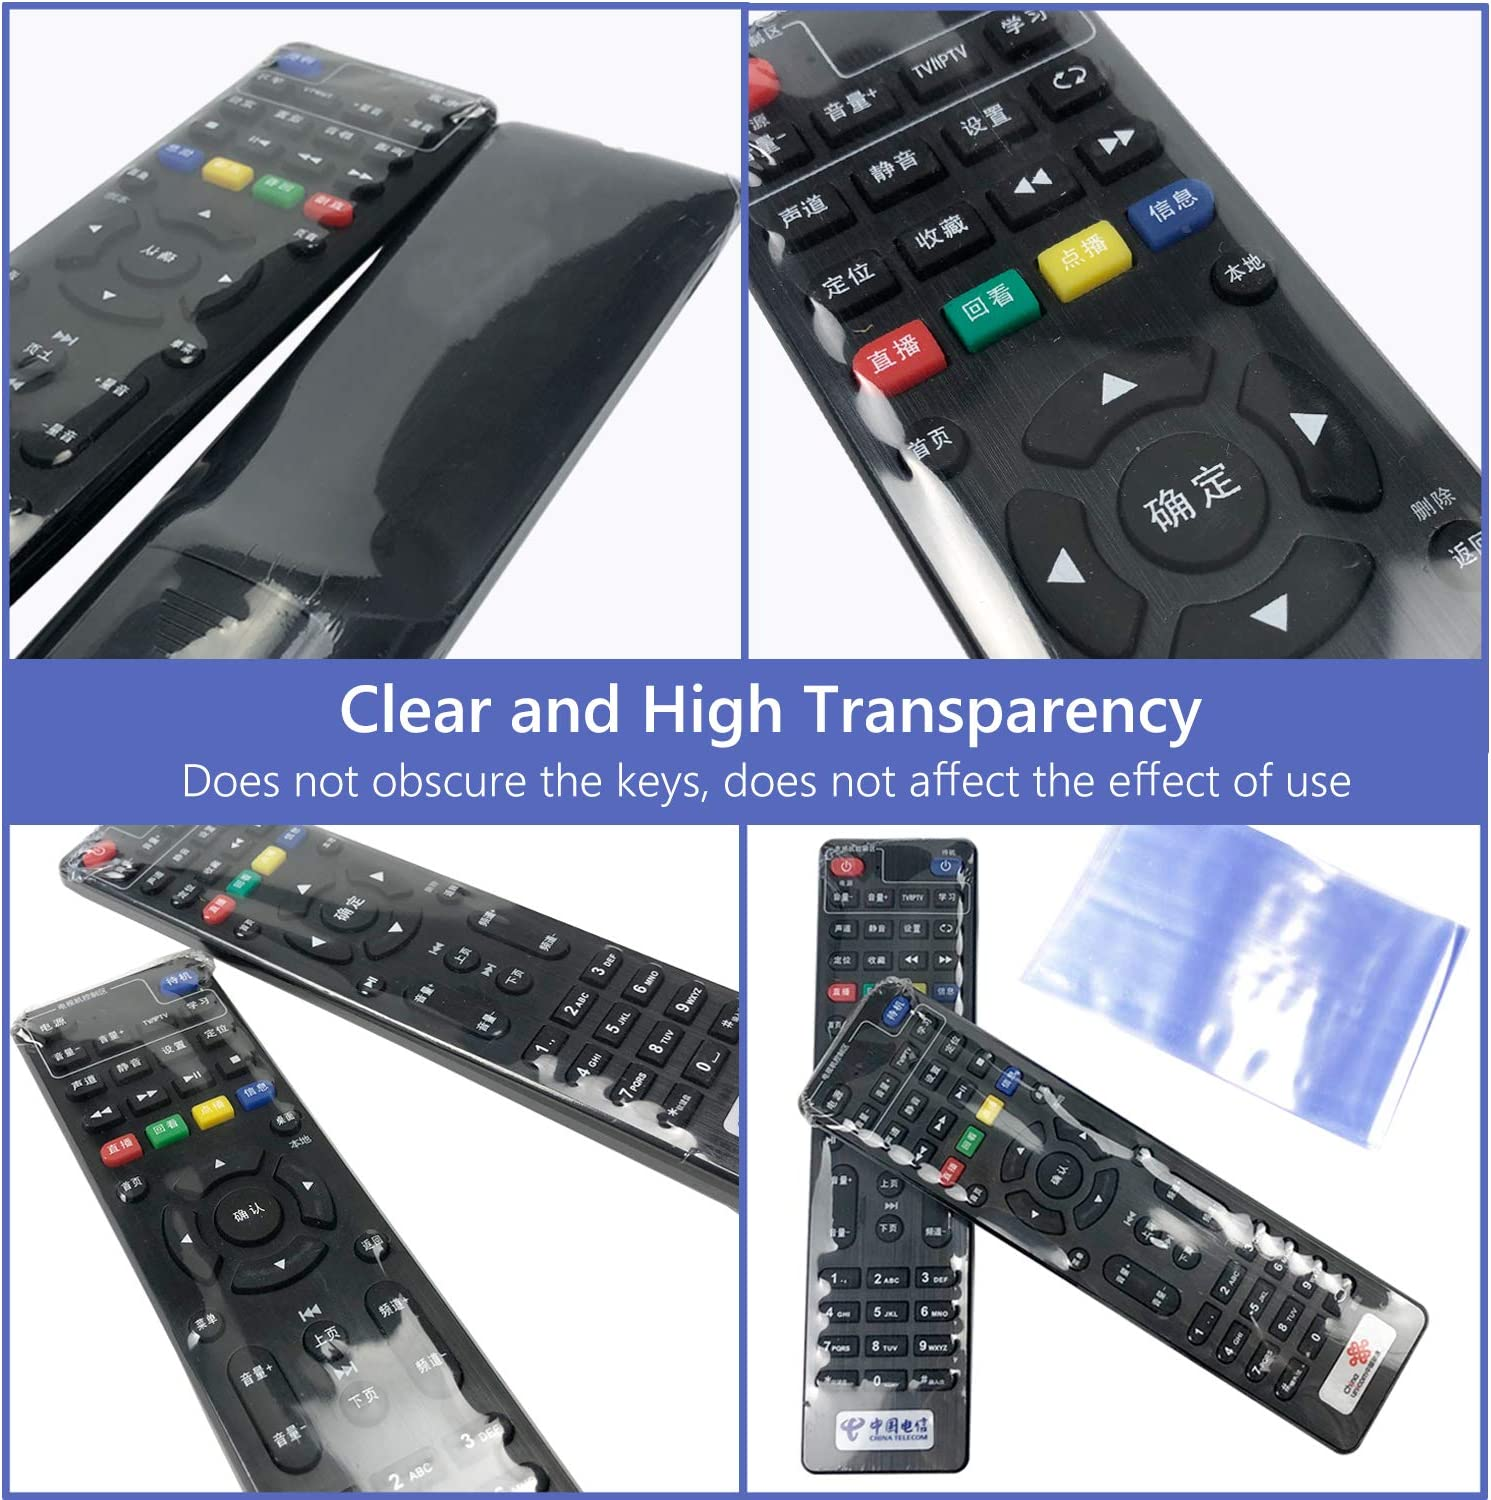 100 PCS Shrink Wrap Bags for TV Remote Control,2.7 x8 Inches Clear PVC Heat Shrink Universal Protective Film,Dustproof and Waterproof Protective Case Cover for Air Condition Video TV Remote